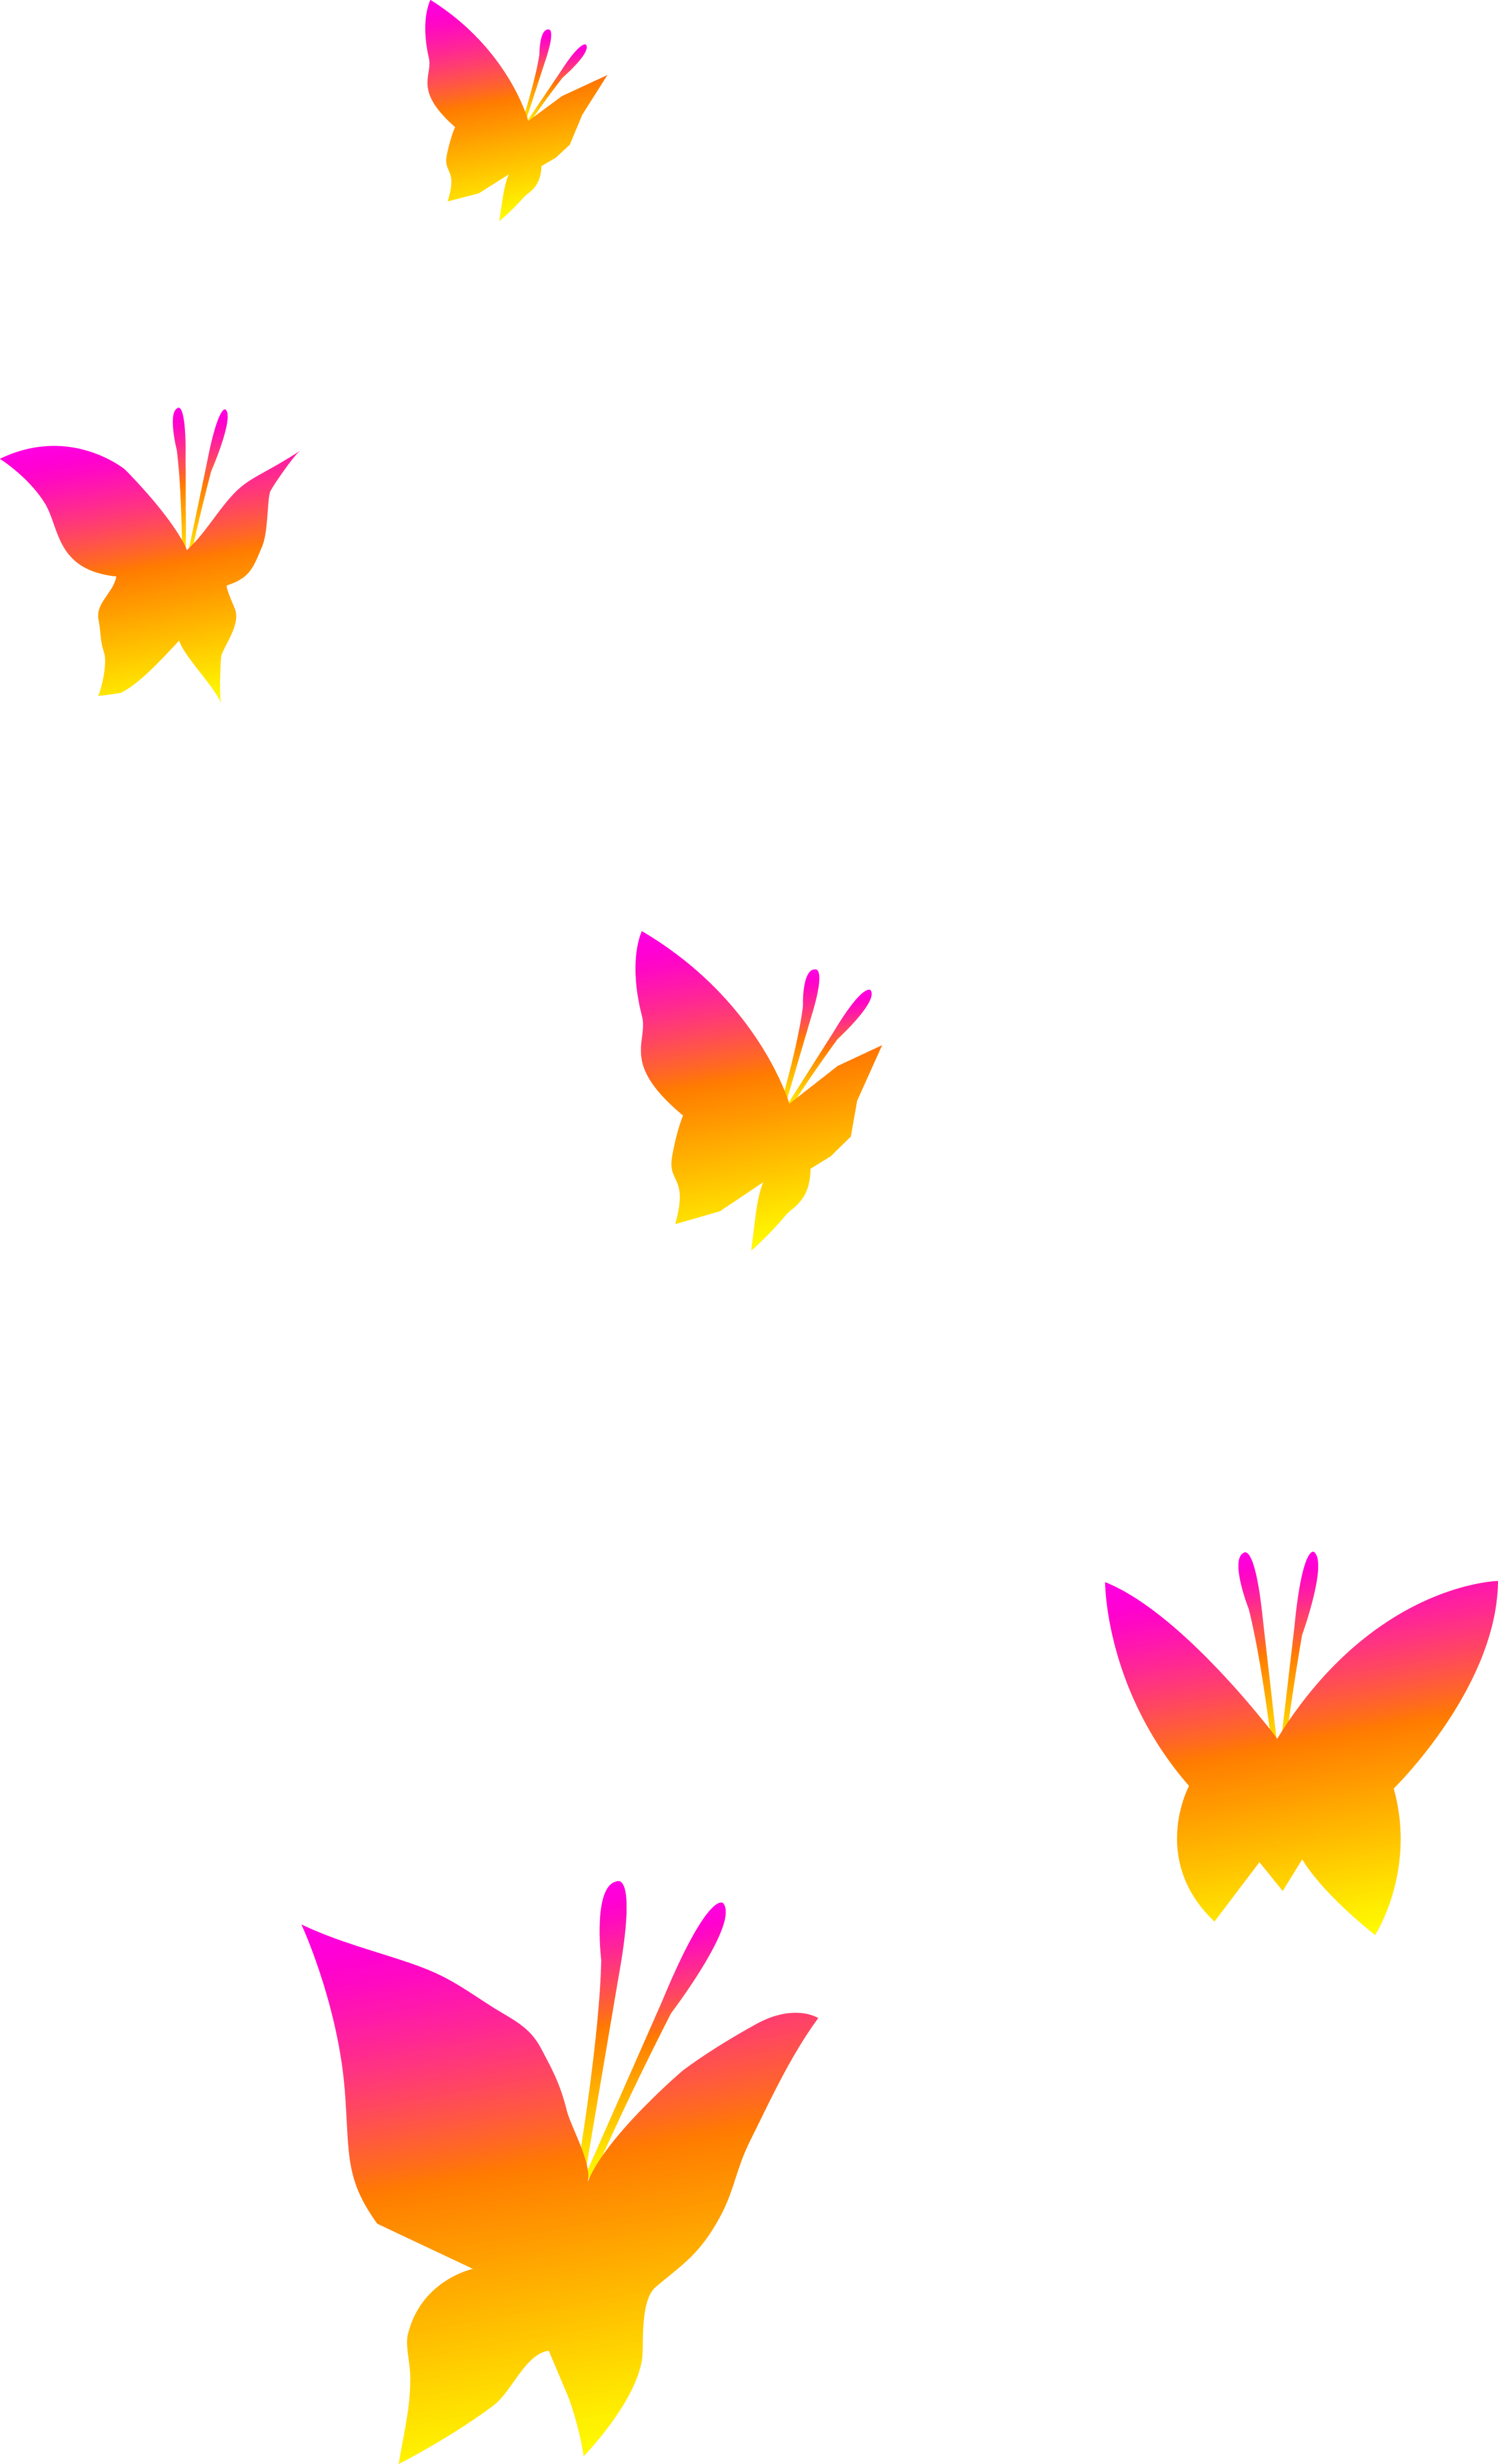 Flying Butterfly Animated Animated Butterflies Flying Clipart Best